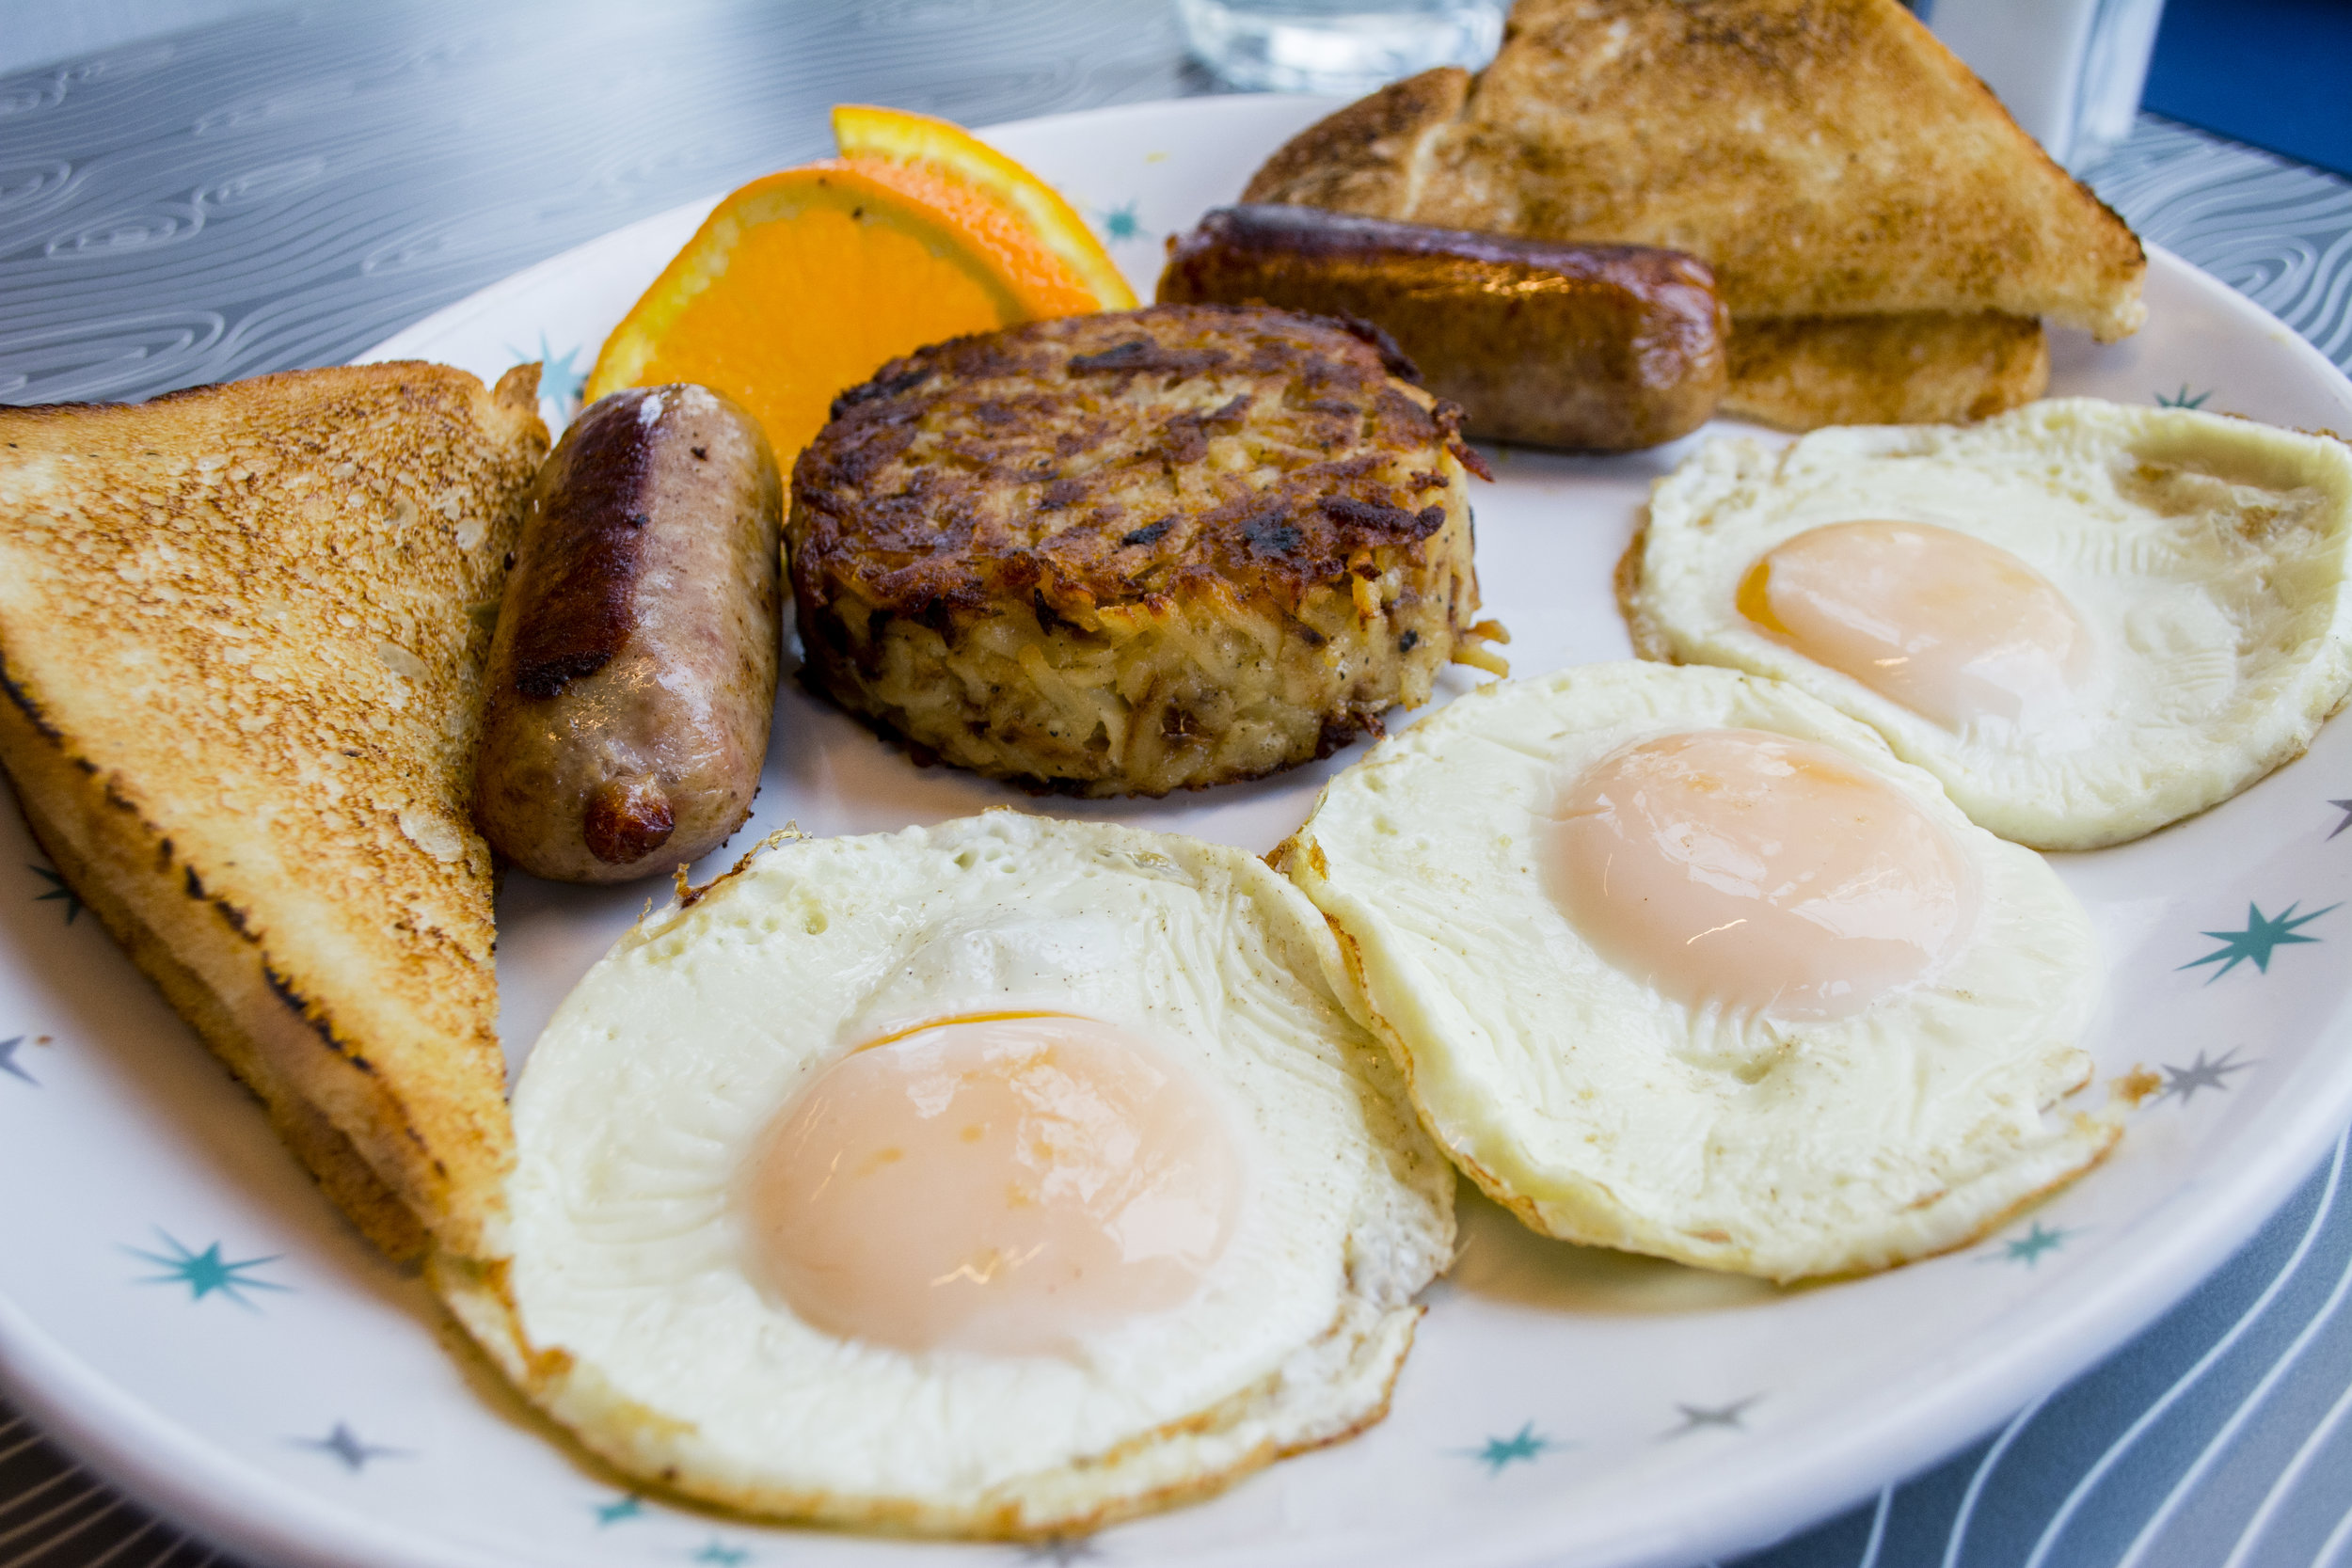 The Classic ($10.75) features three eggs, any style, with a side of hash browns, choice of protein and toast.